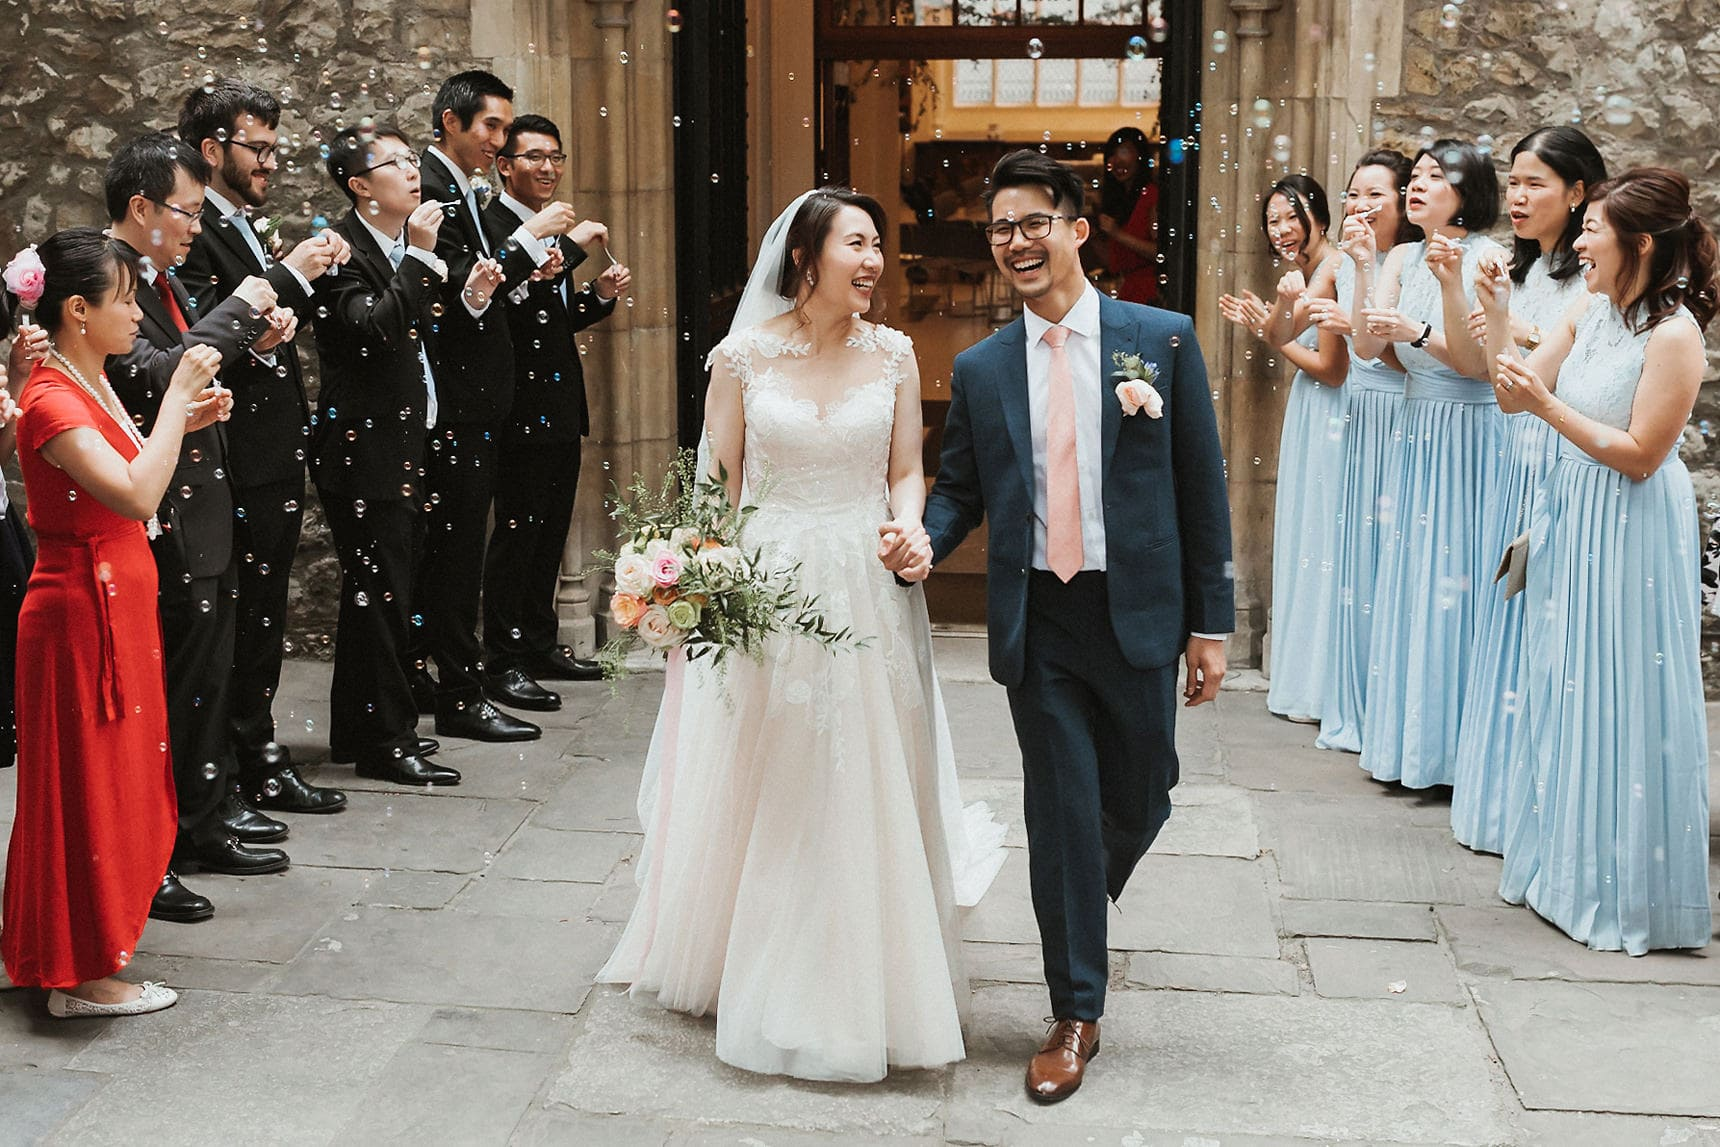 st helens church wedding london